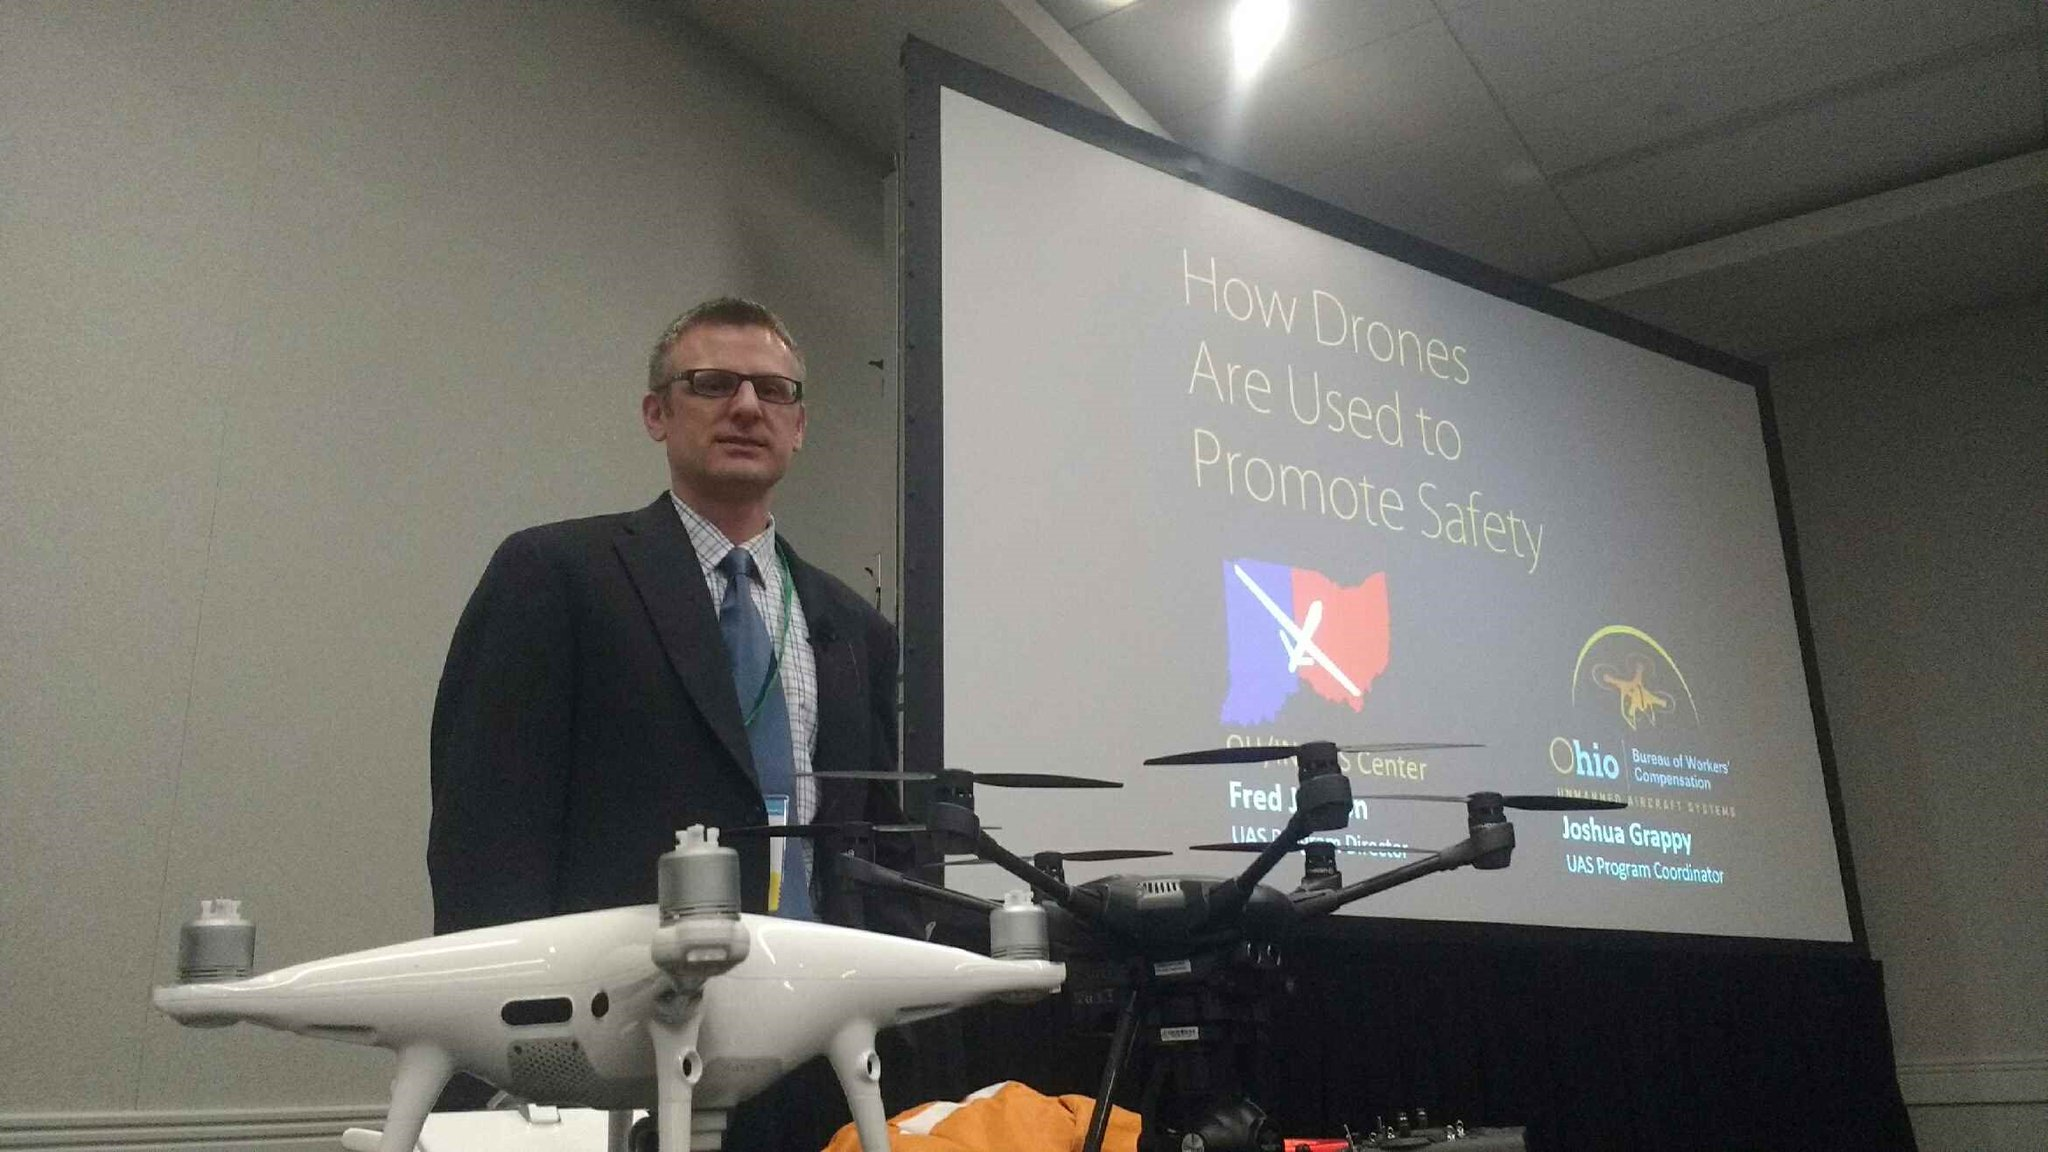 #OSC17 session 5226: How drones are used to promote safety. Covered how drones augment dangerous work performed by humans. https://t.co/C664eH5TNo